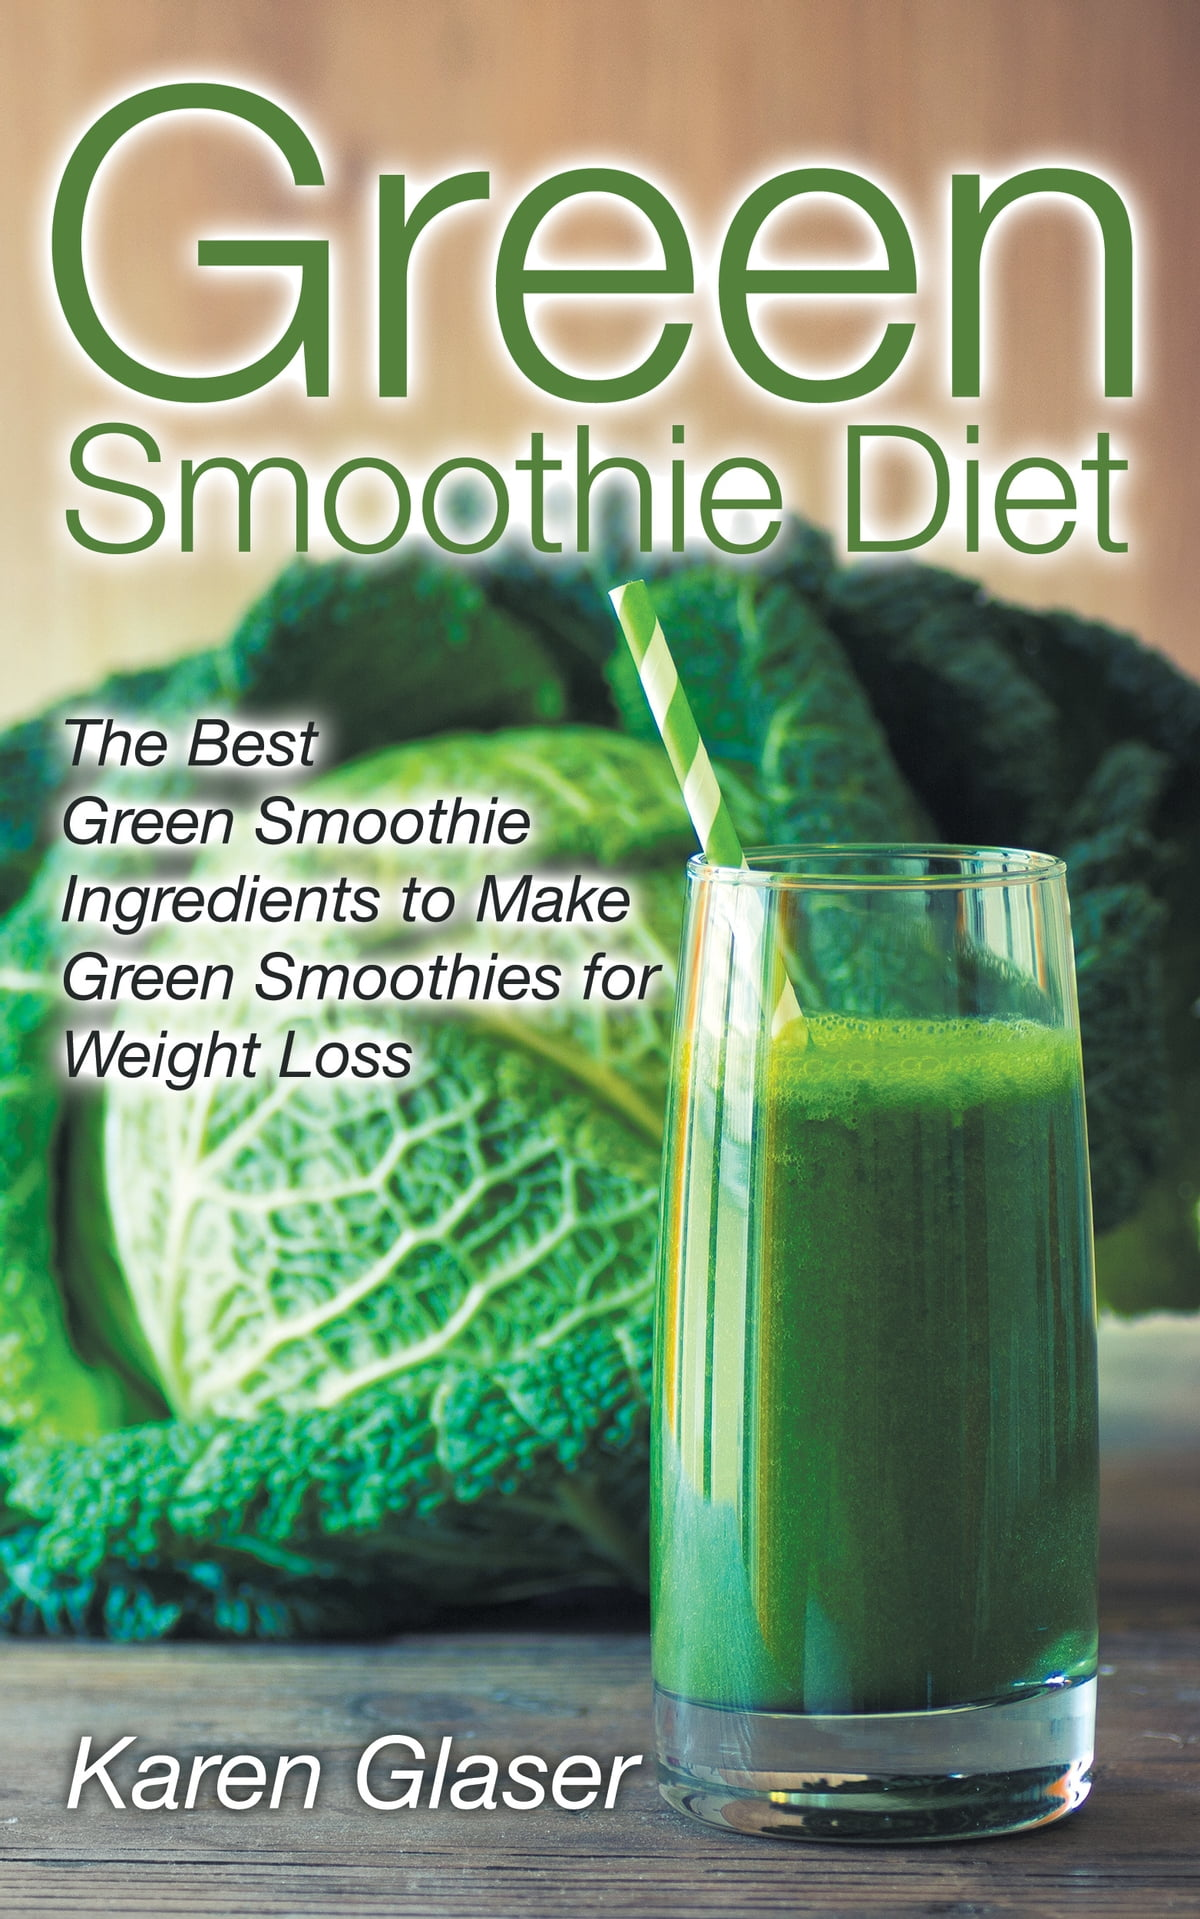 Green Smoothie Diet The Best Green Smoothie Ingredients To Make Green Smoothies For Weight Loss Ebook By Karen Glaser 9781631878718 Rakuten Kobo United States